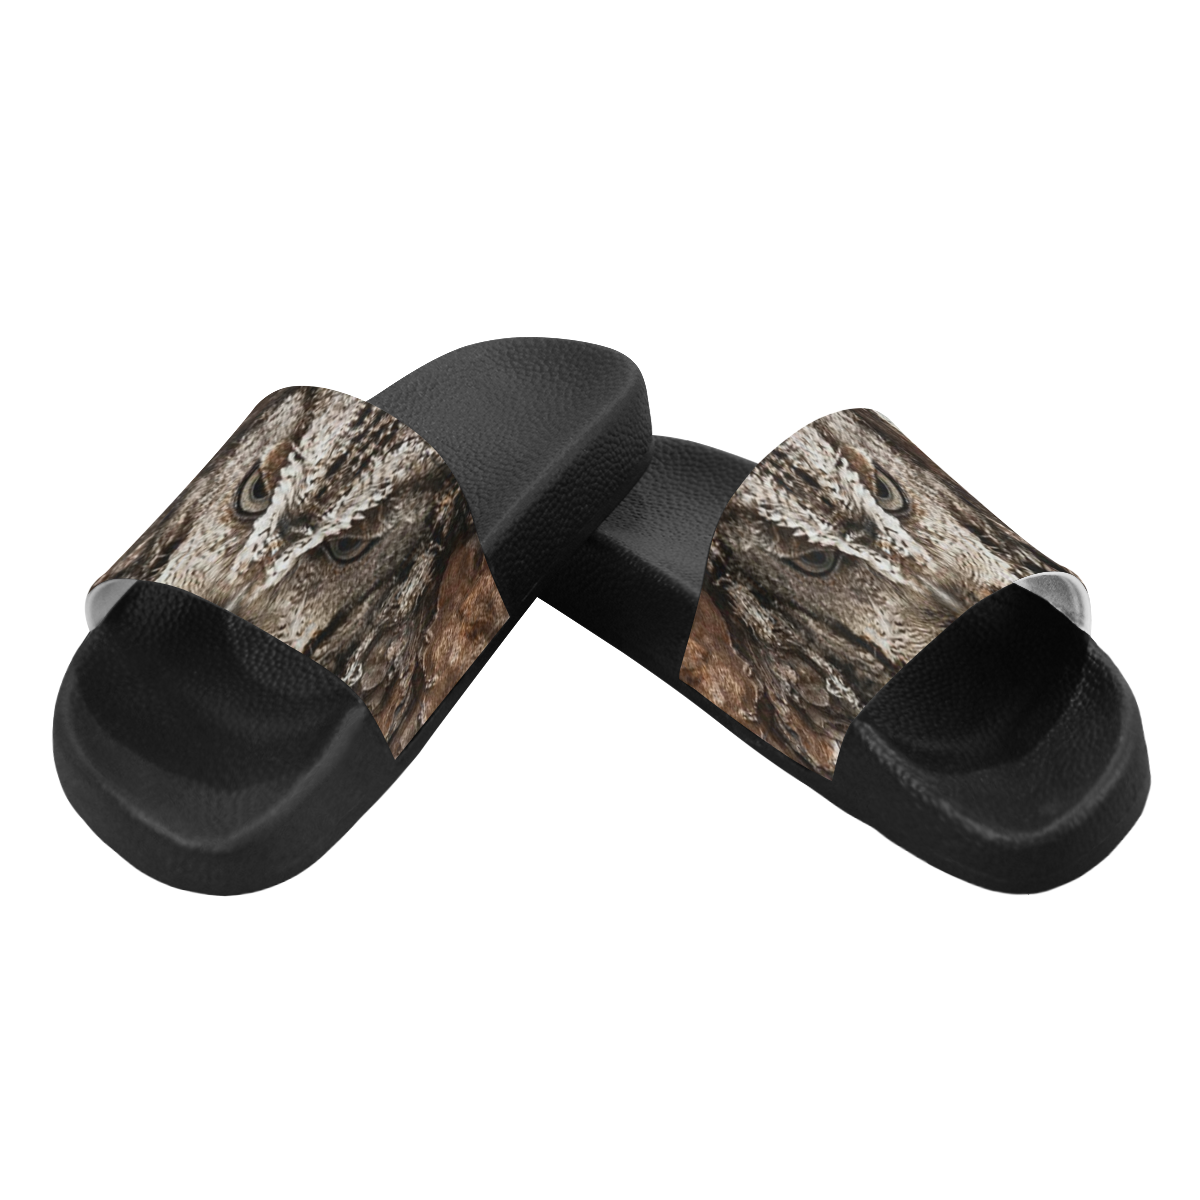 HIDDEN OWL Men's Slide Sandals (Model 057)